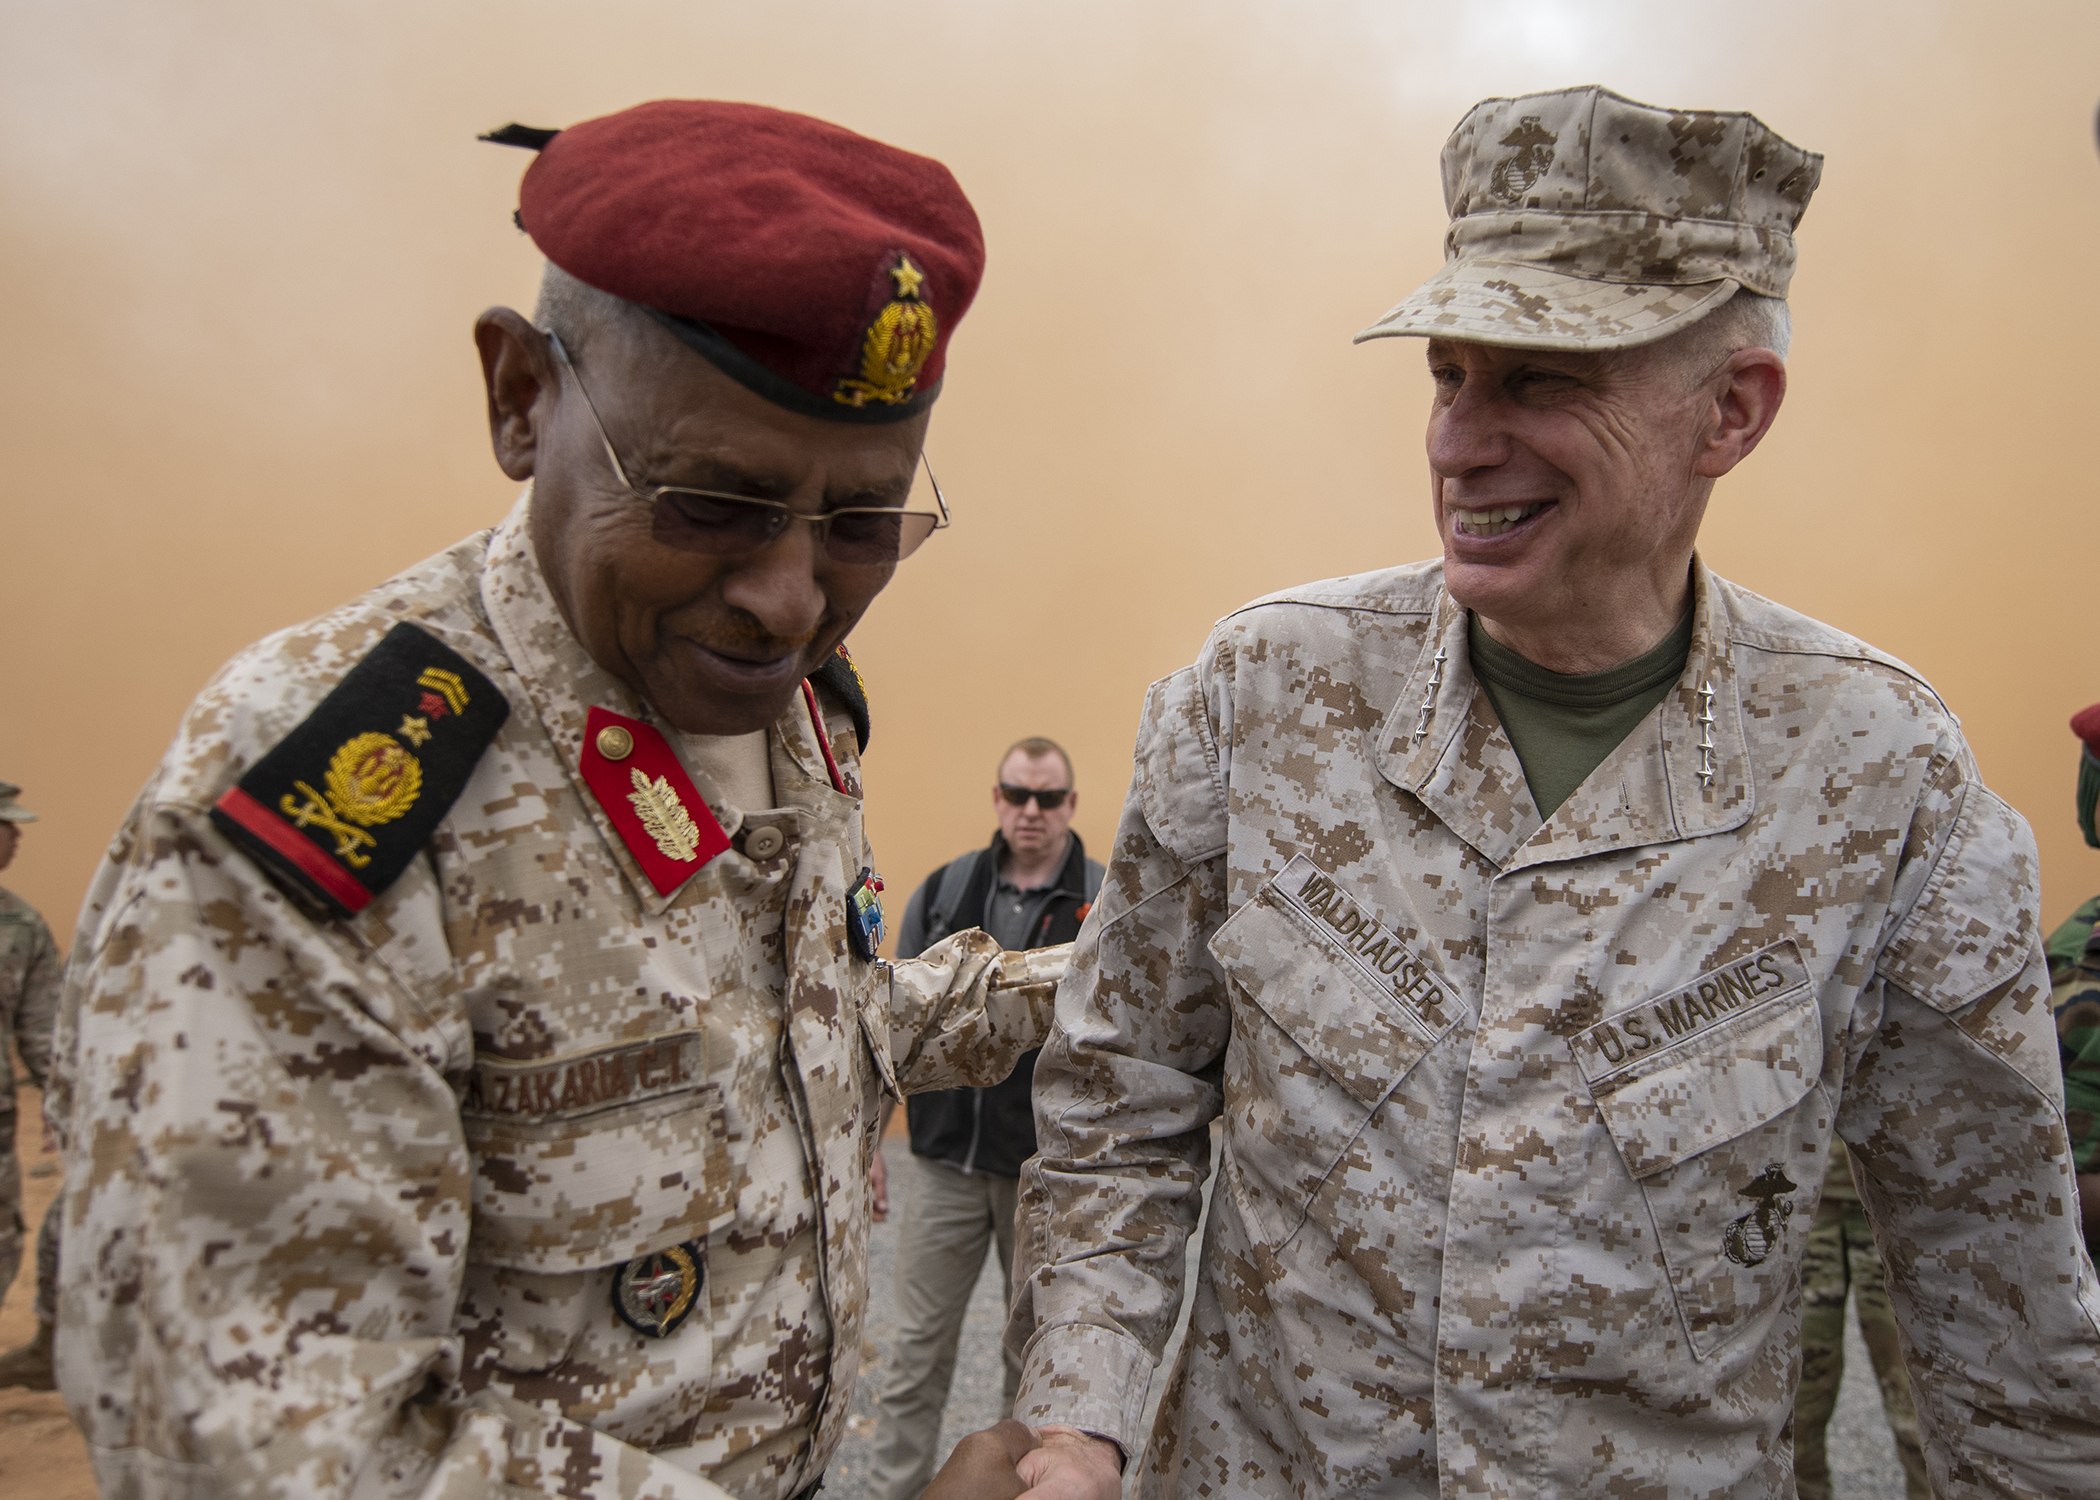 U.S. Marine Corps Gen. Thomas D. Waldhauser, right, commander of U.S. Africa Command, shakes hands with Chief of General Staff of the Djibouti Armed Forces Gen. Zakaria Cheikh Ibrahim, at a training base in Djibouti, March 21, 2019. While in Djibouti, Waldhauser observed the ongoing growth and development of the Rapid Intervention Battalion, the Djiboutian army's elite military force, which the U.S. is in the process of training and equipping at the request of the Djiboutian government. (U.S. Air Force photo by Tech. Sgt. Shawn Nickel)